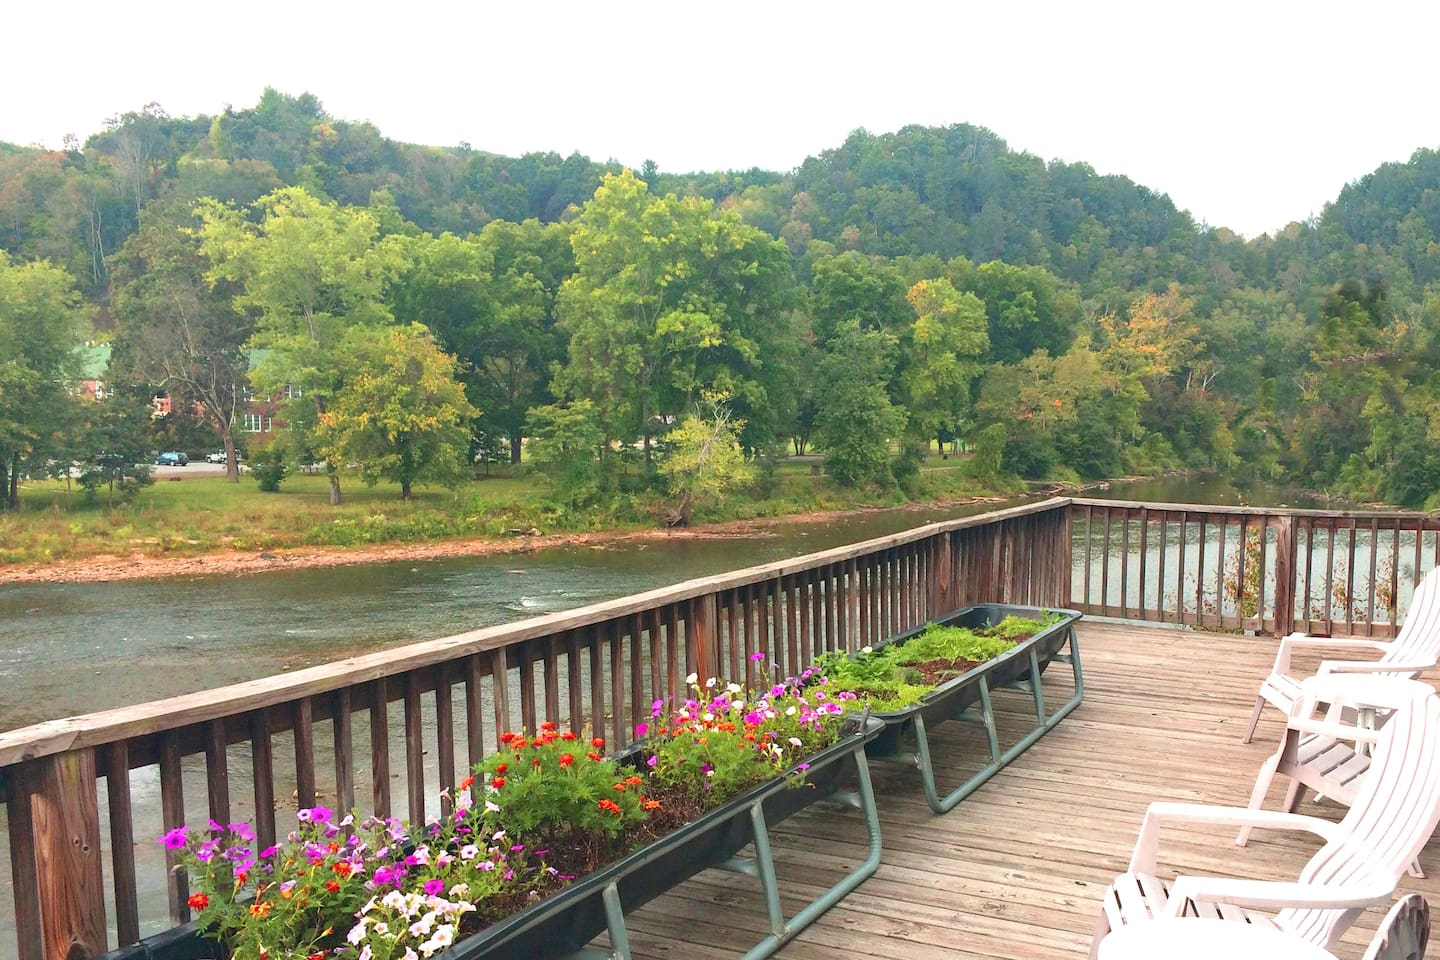 No better place for cocktails or coffee. One of three outdoor spaces, and the best river view deck in Marshall.